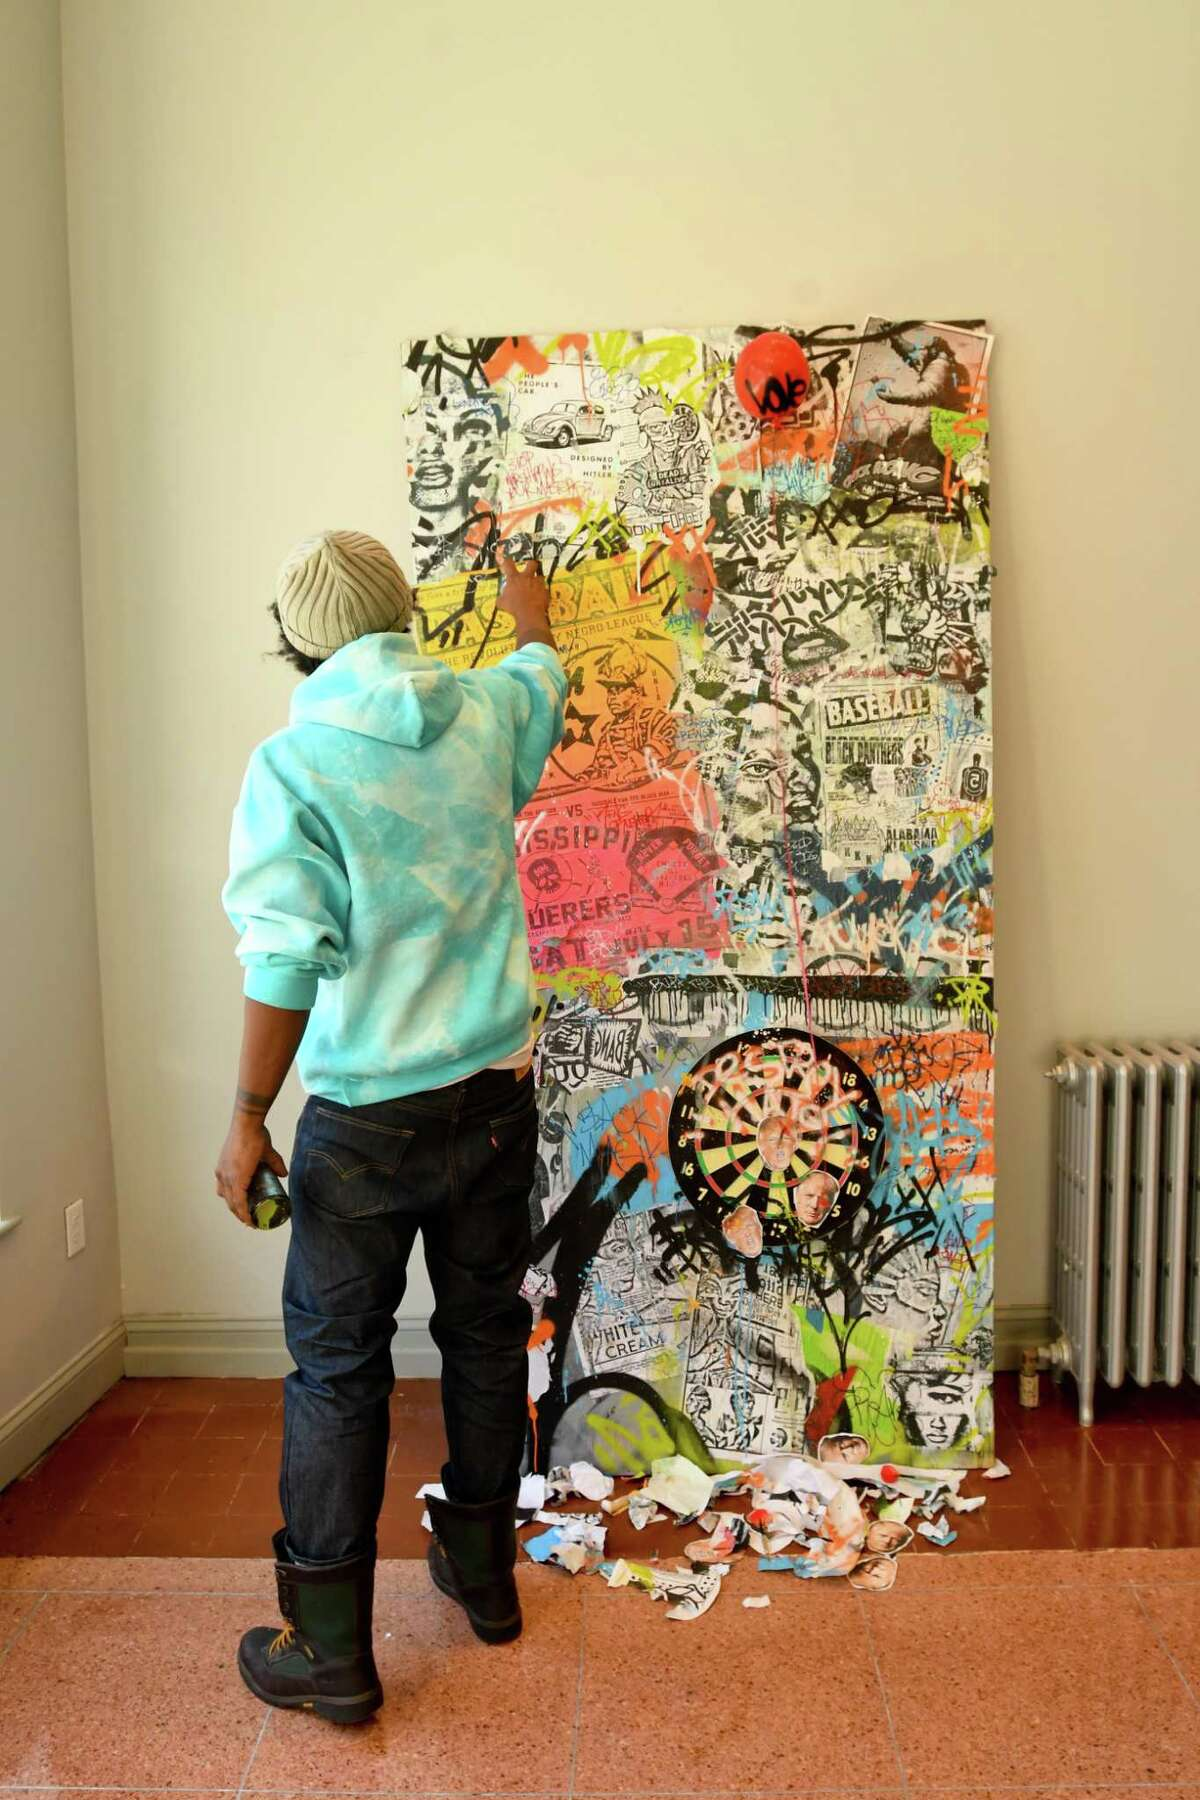 Jahmane, artist and co-curator of the Blends Gallery in Bridgeport, puts the finishing touches on his artwork for the gallery's first show.